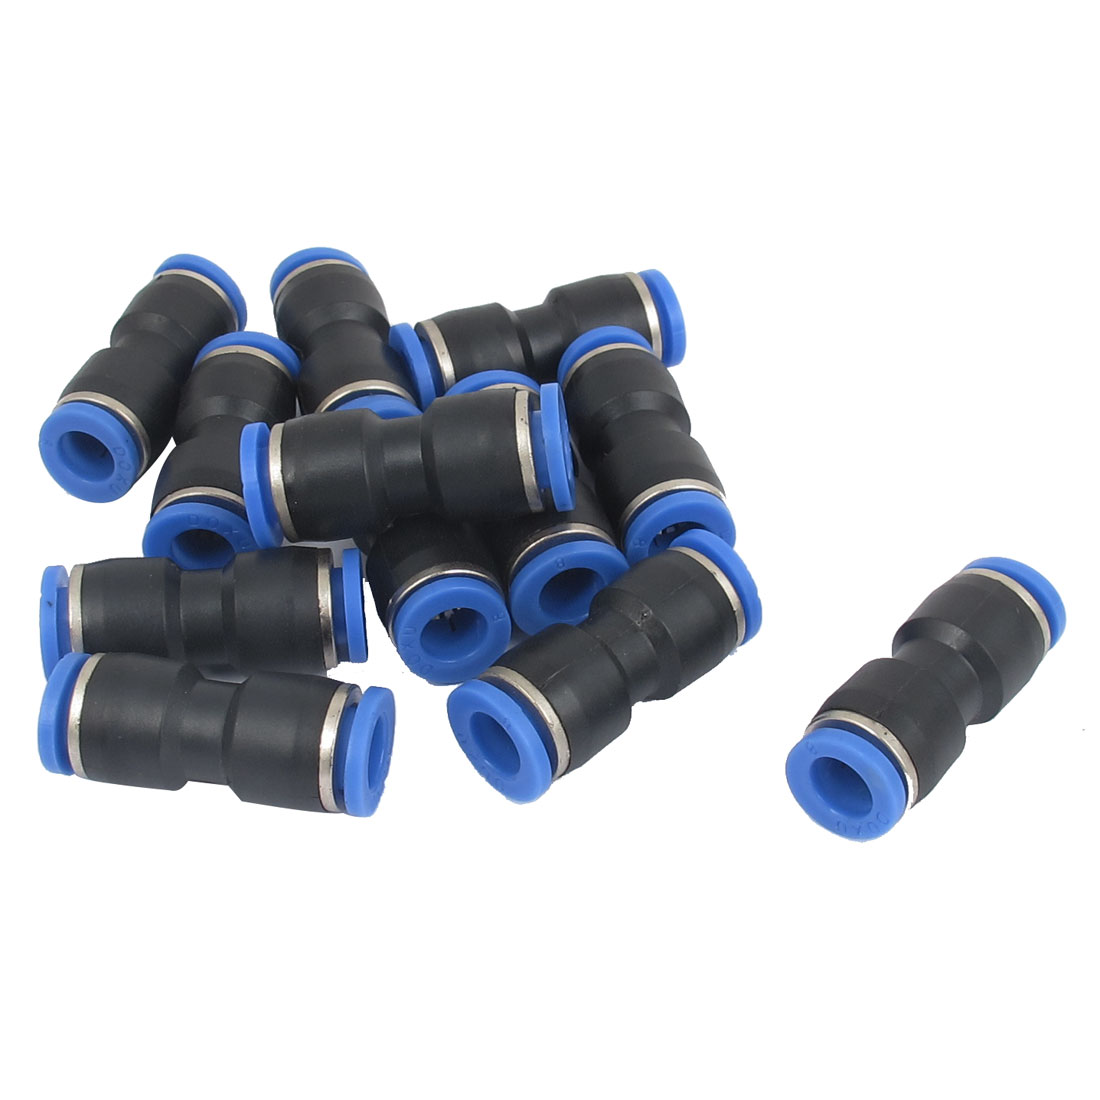 Push in Fitting One Touch Straight Union Connector 8mm to 8mm 12 Pcs